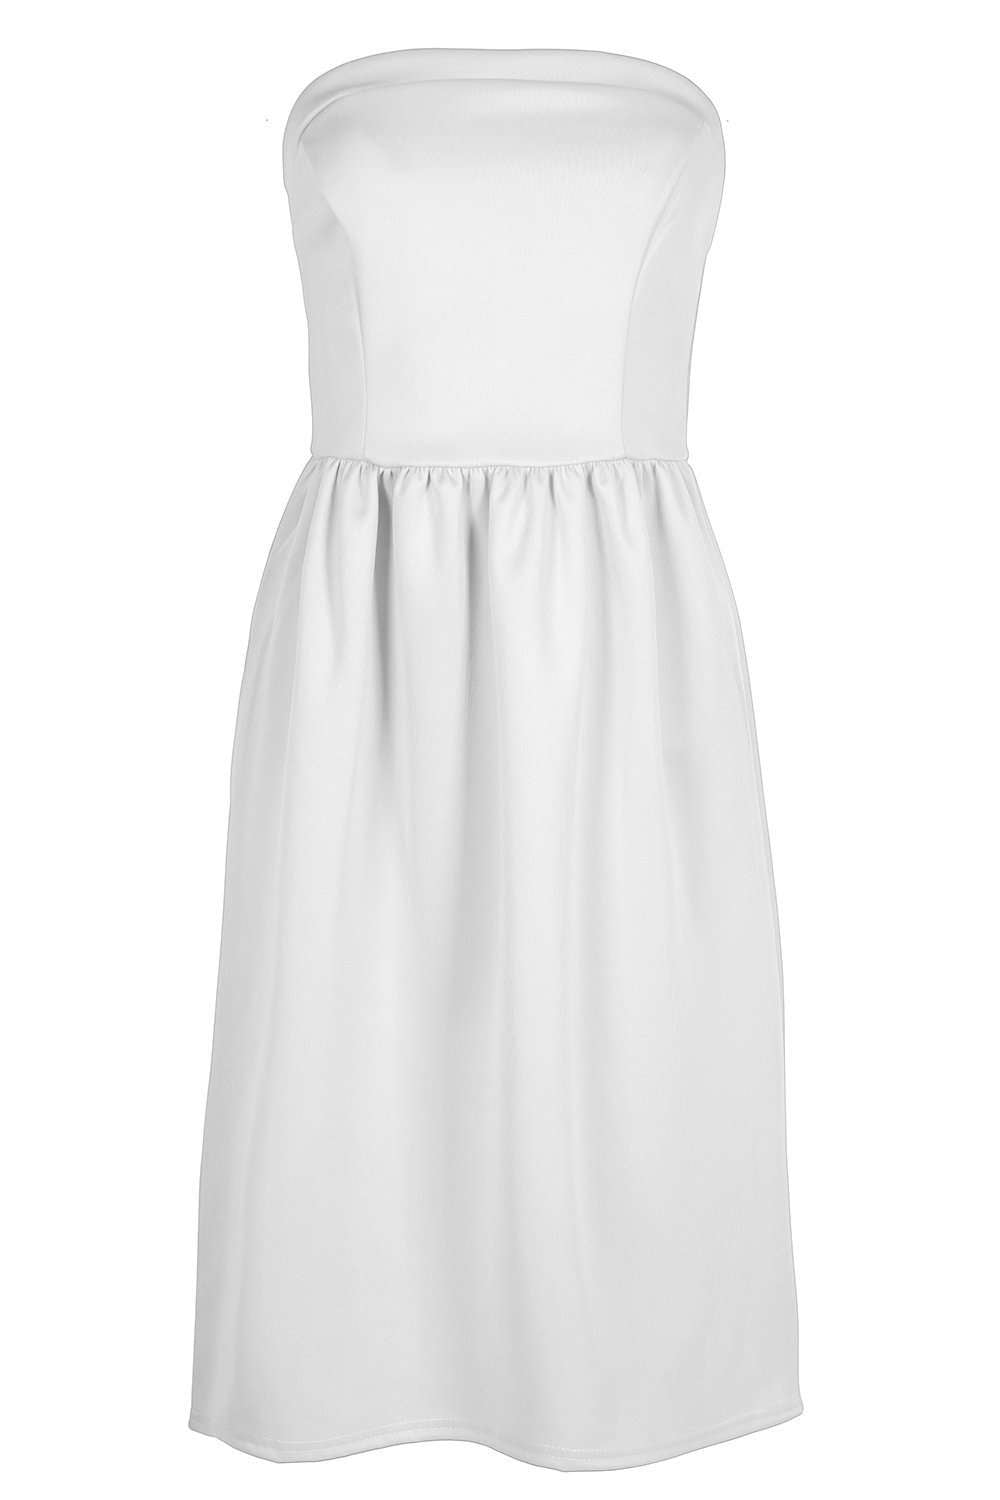 Michaela Black Bardot Midi Skater Dress - bejealous-com